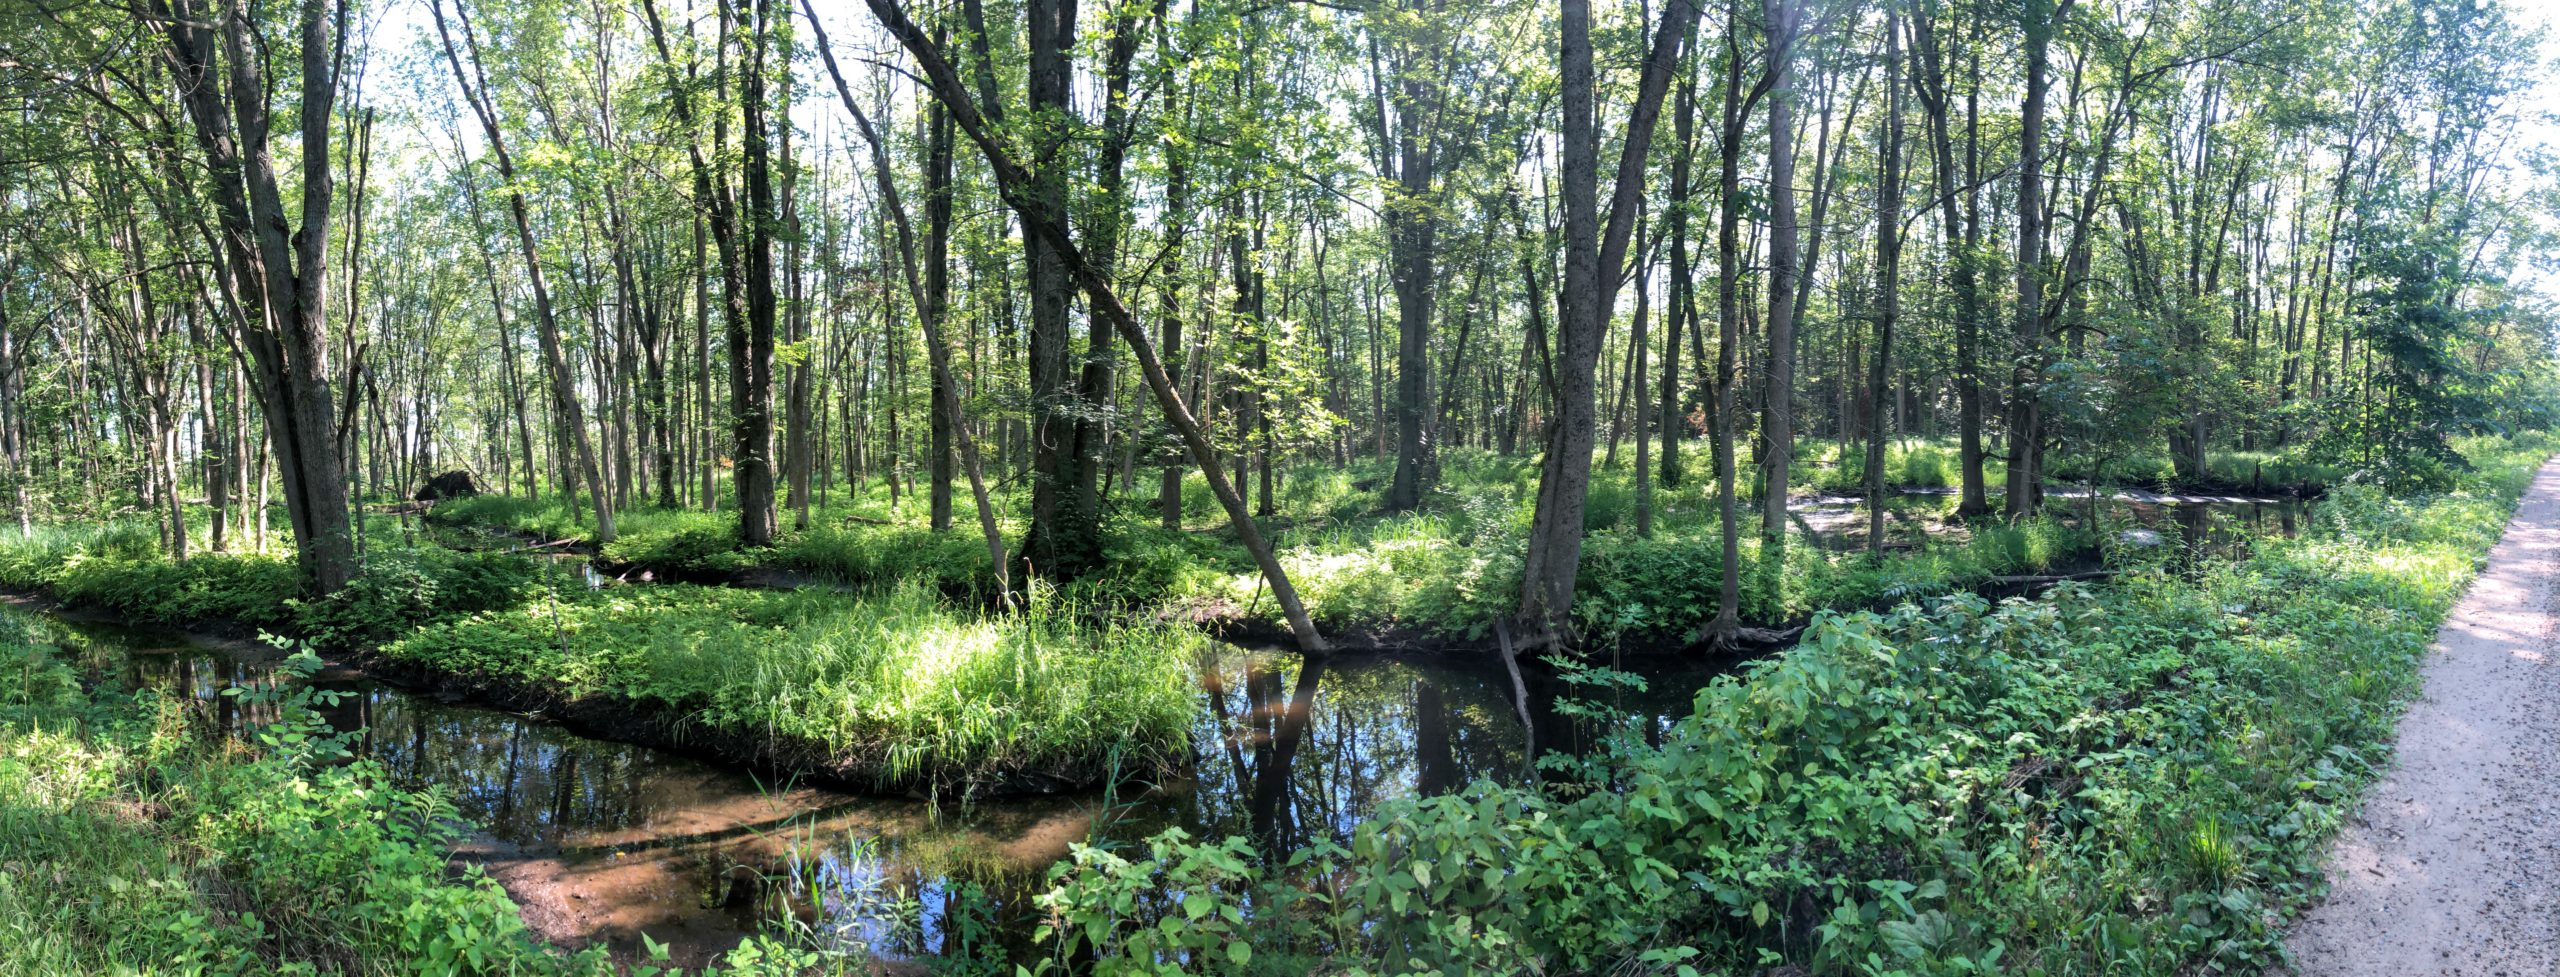 Simcoe County Loop Trail - Hodge Research Area,  Vespra Valley Rd, Minesing, ON L0L 1Y3